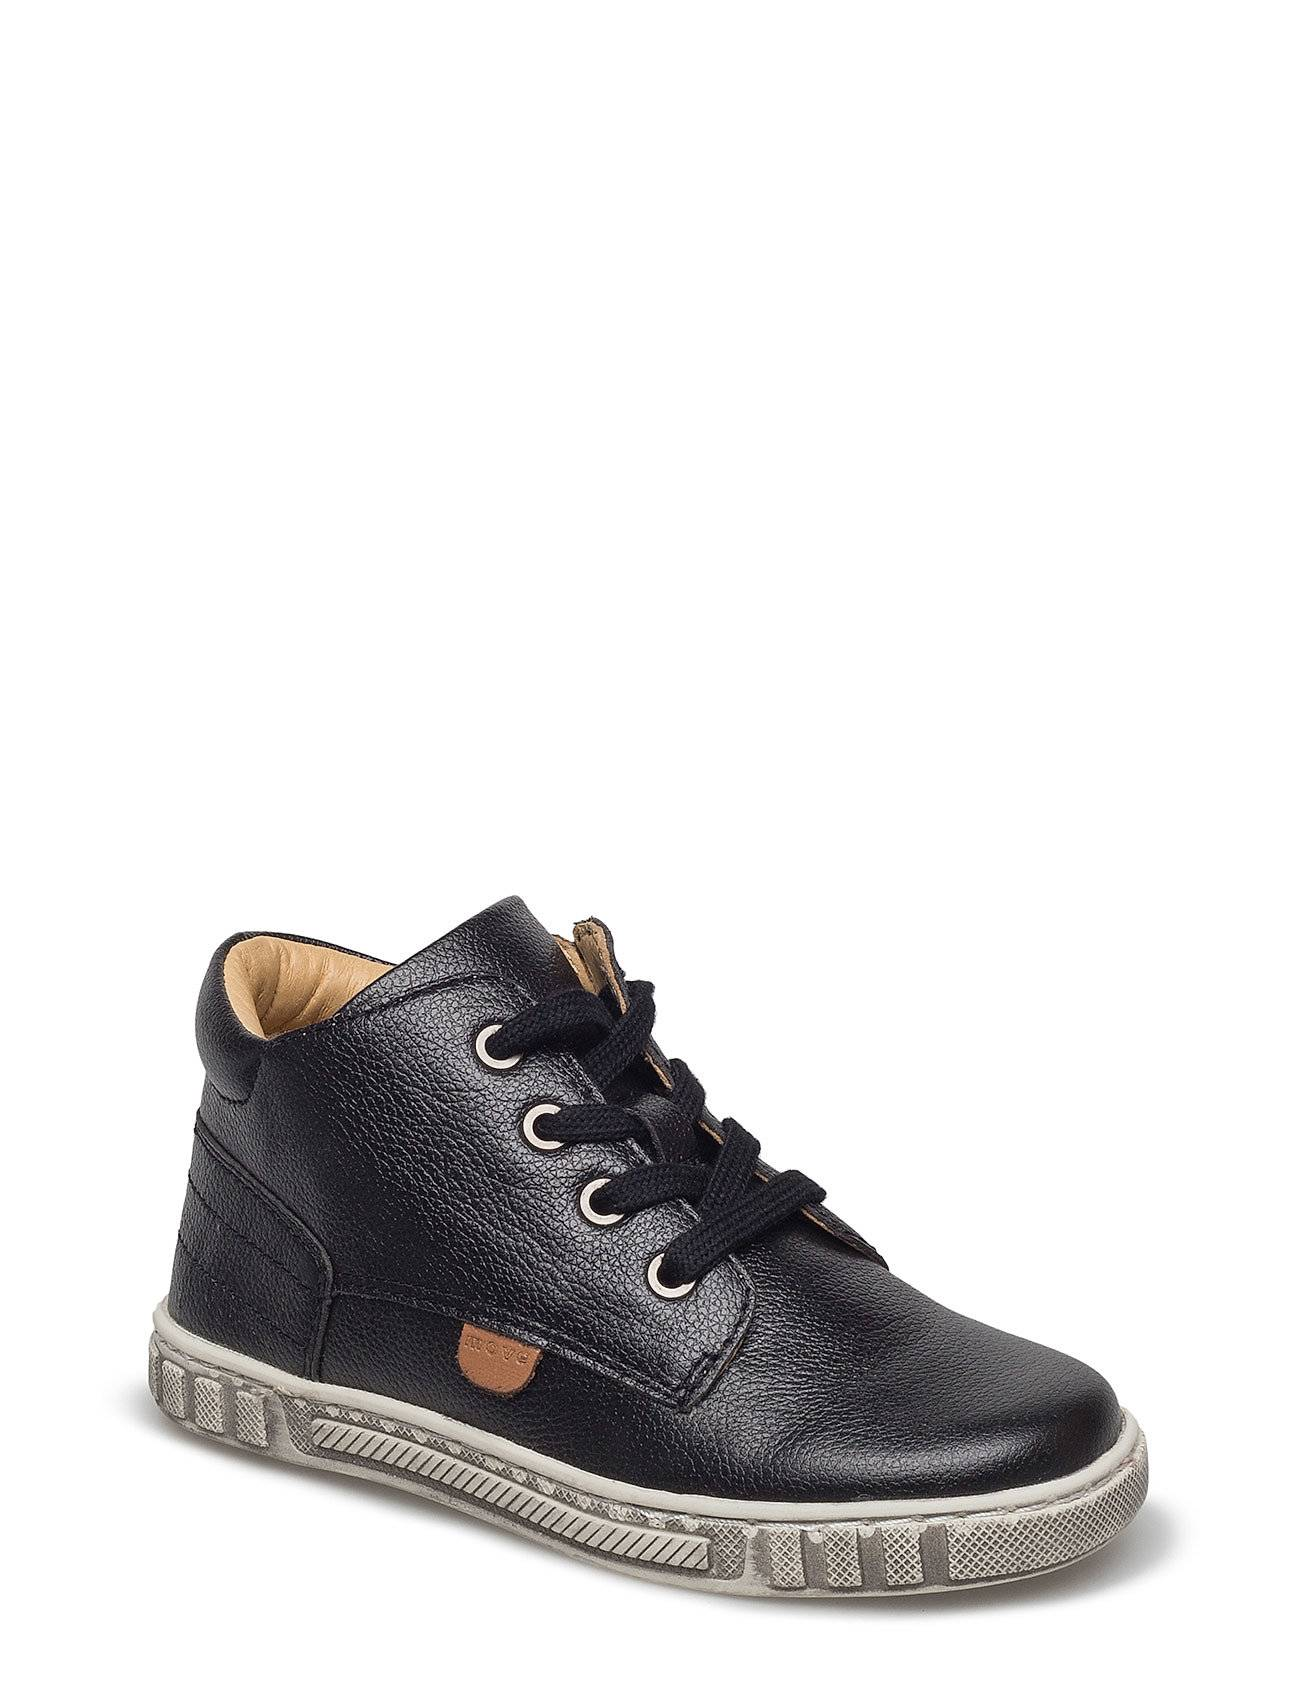 Move by Melton Infant - Sneaker Boot